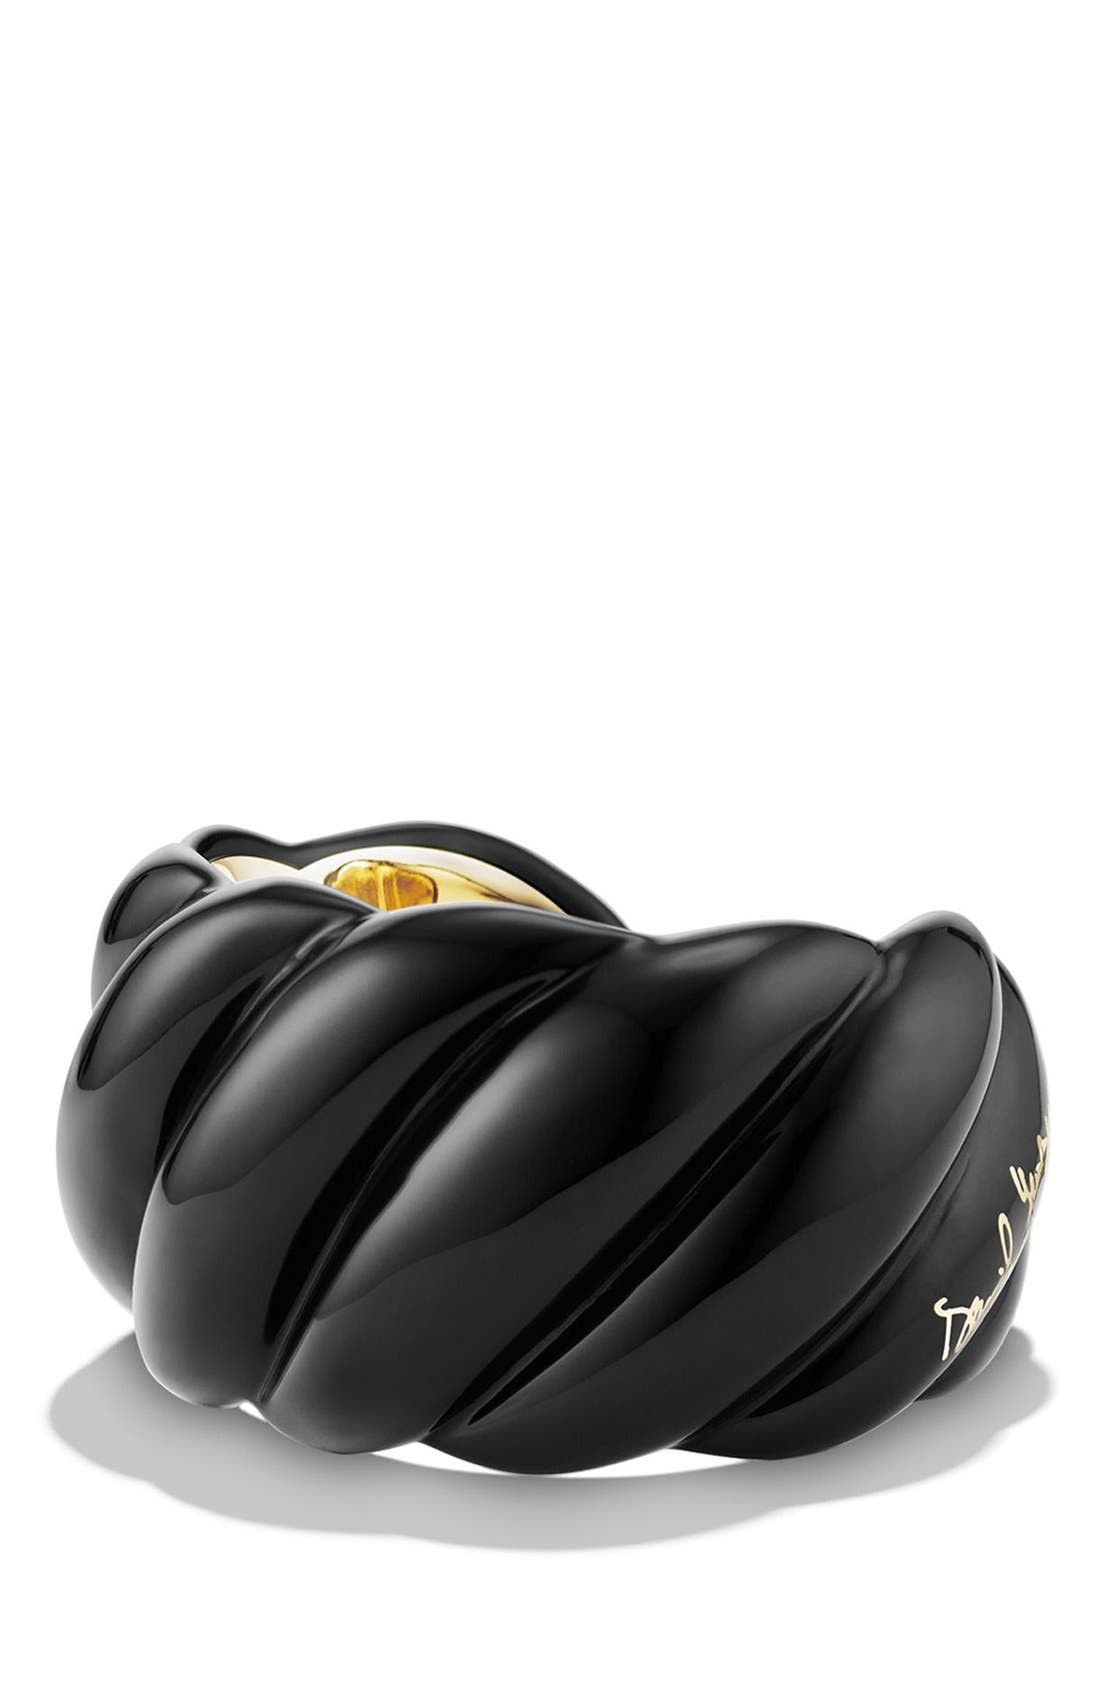 David Yurman 'Sculpted Cable' Resin Cuff Bracelet with 18k Gold